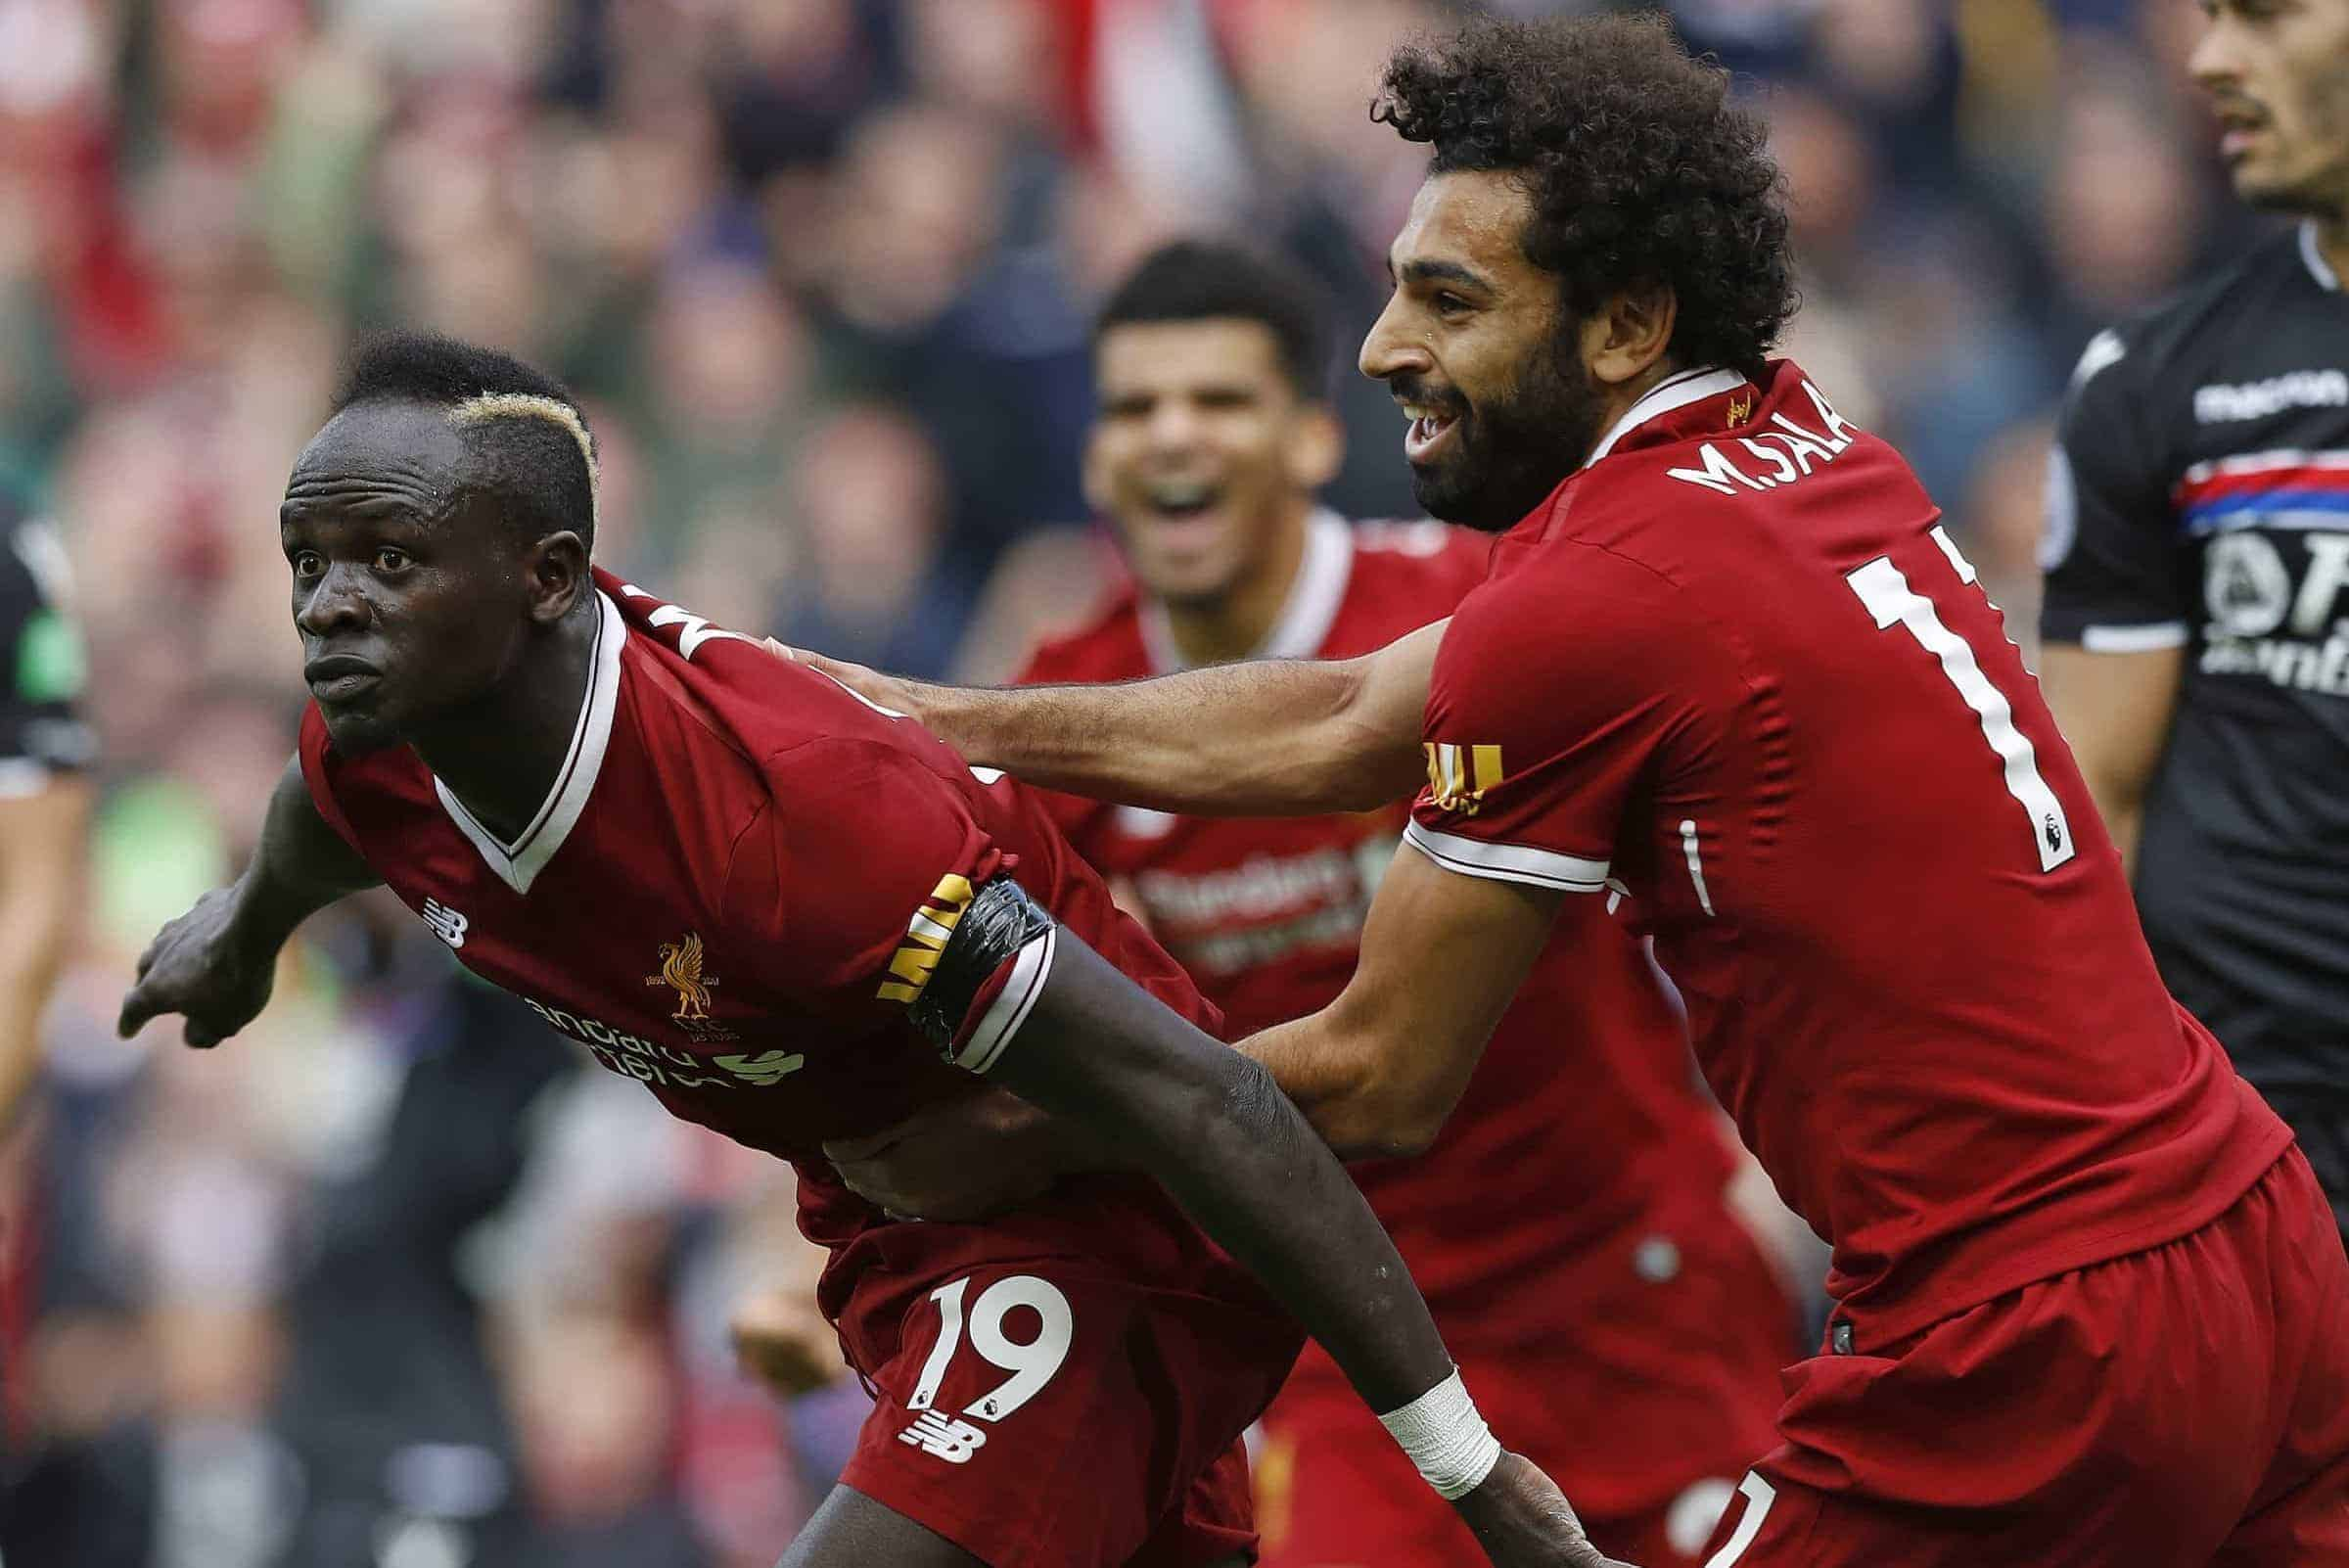 Liverpool's Sadio Mane celebrates scoring his side's first goal of the game during the Premier League match at Anfield, Liverpool. PRESS ASSOCIATION Photo. Picture date: Saturday August 19, 2017. See PA story SOCCER Liverpool. Photo credit should read: Martin Rickett/PA Wire.